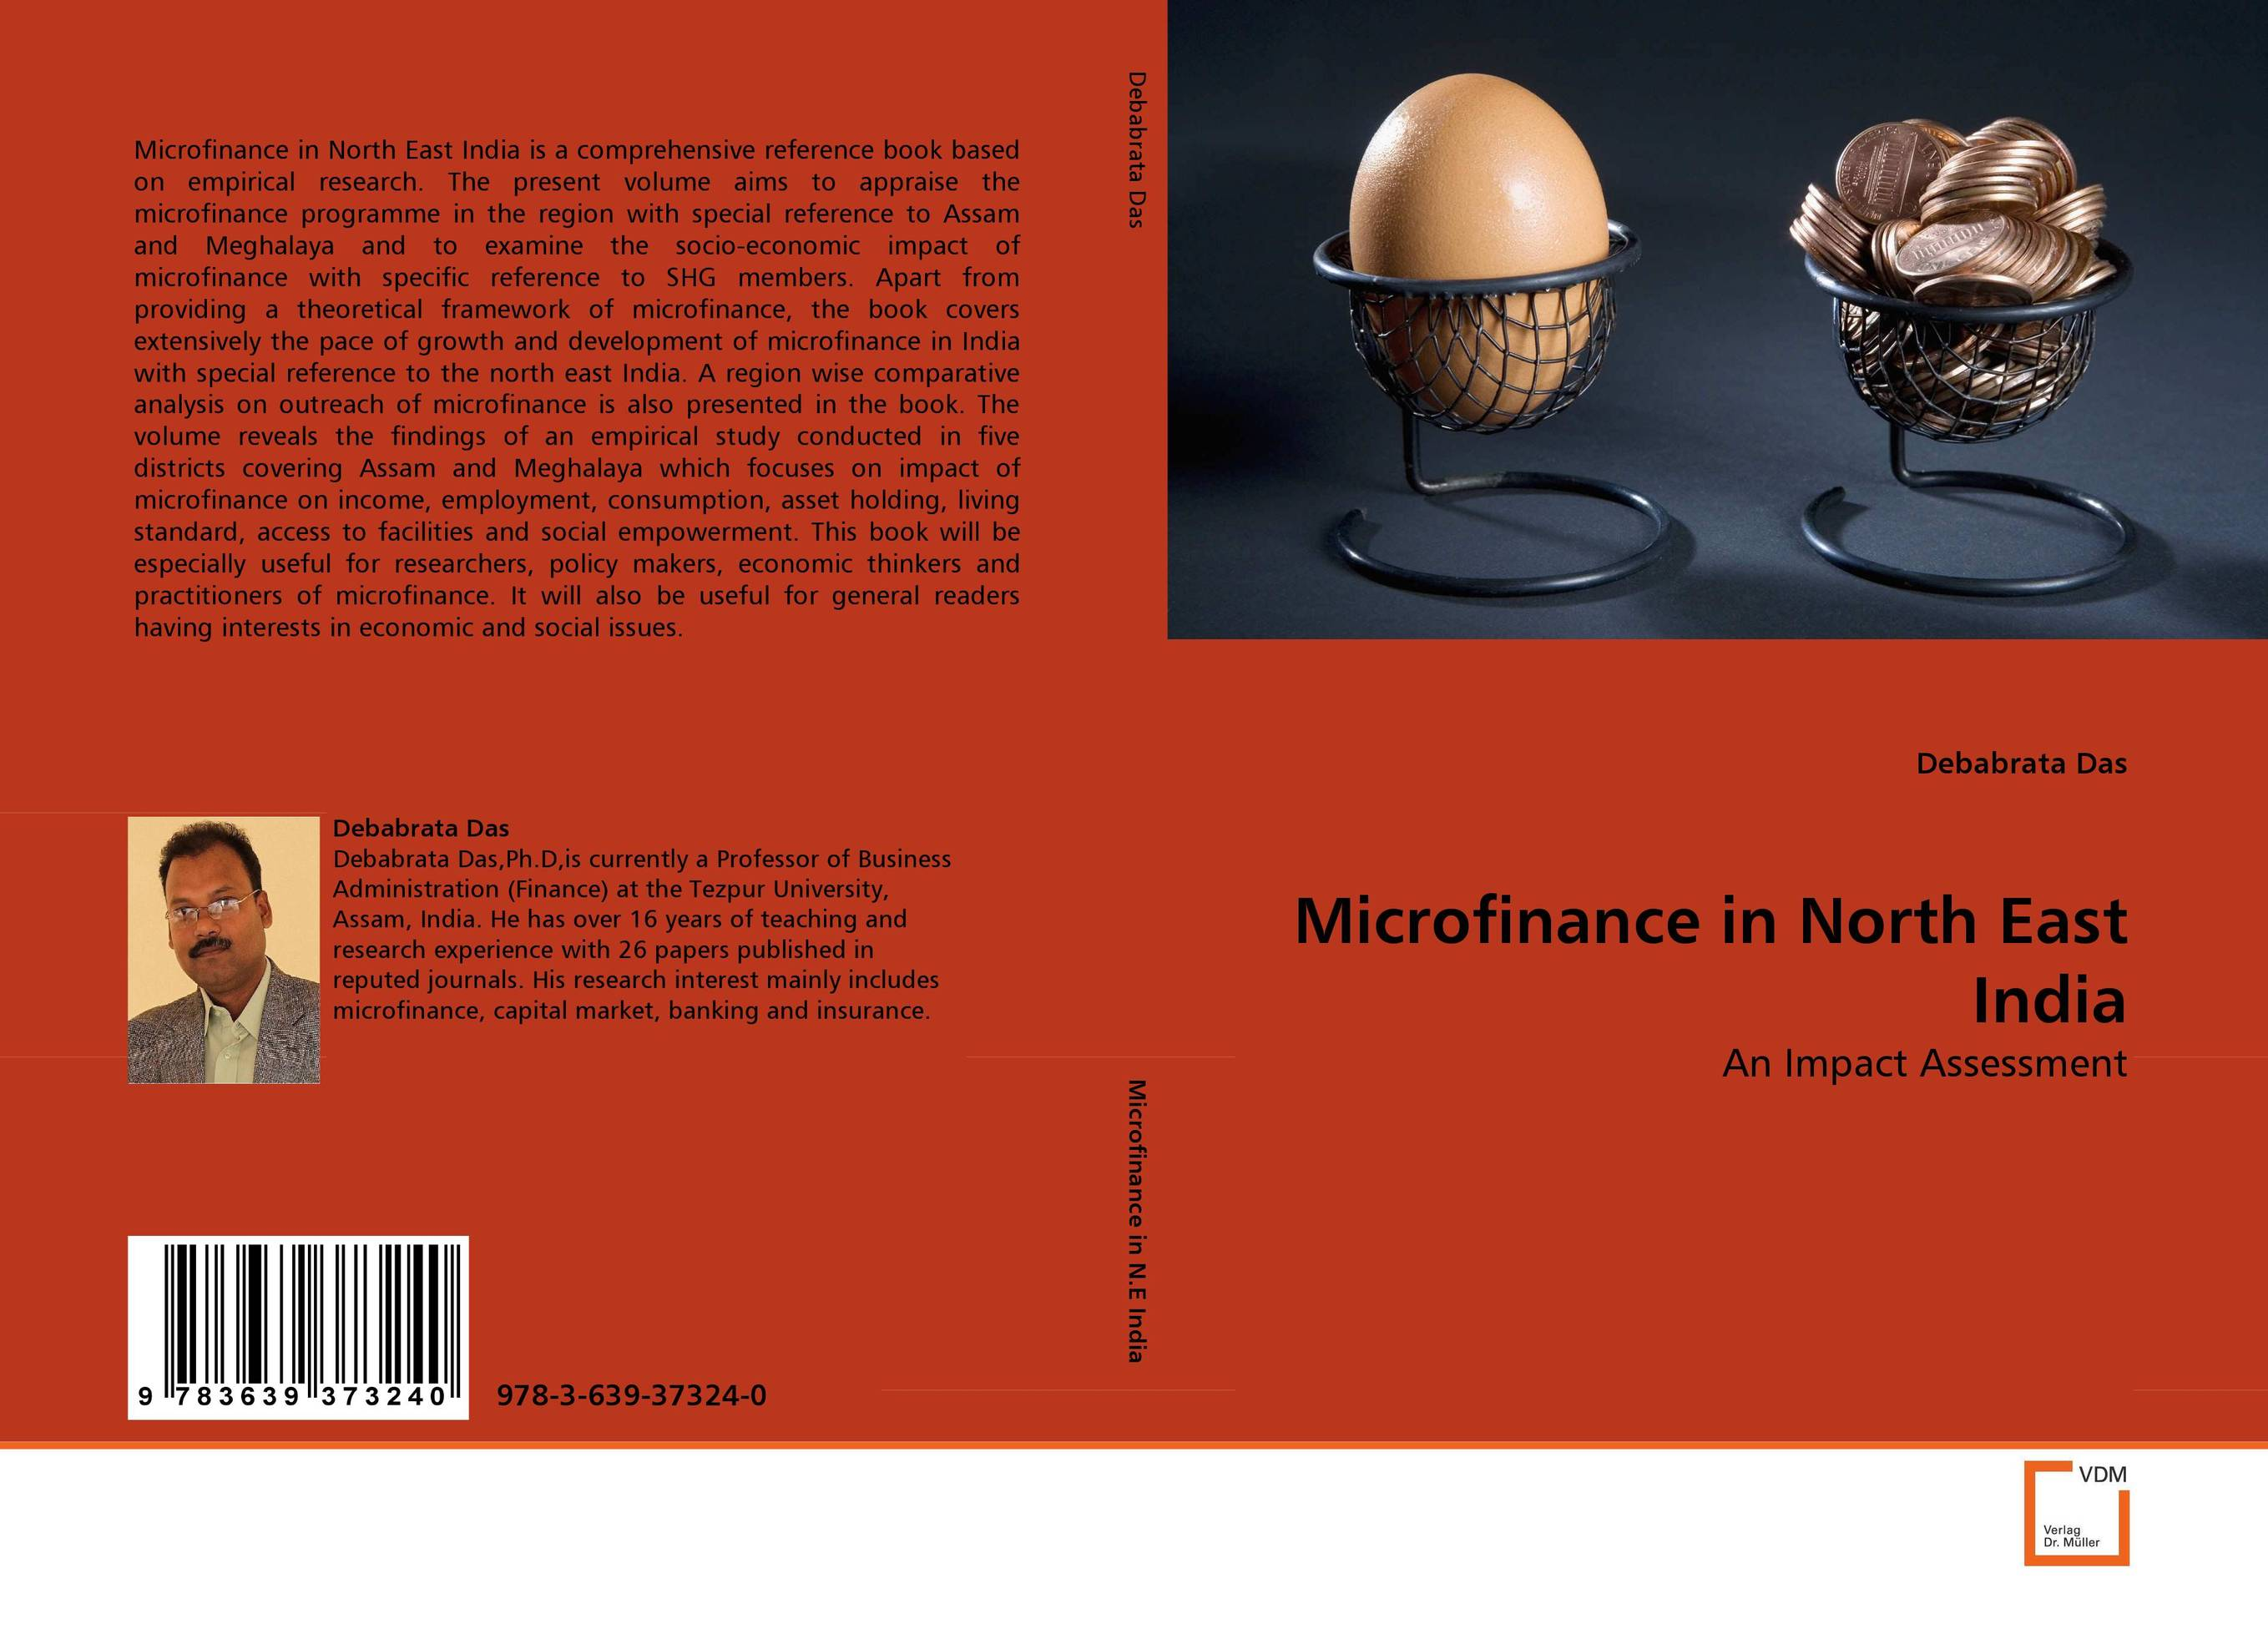 Microfinance in North East India ecology of wildife in special reference to gir lion p leo persica